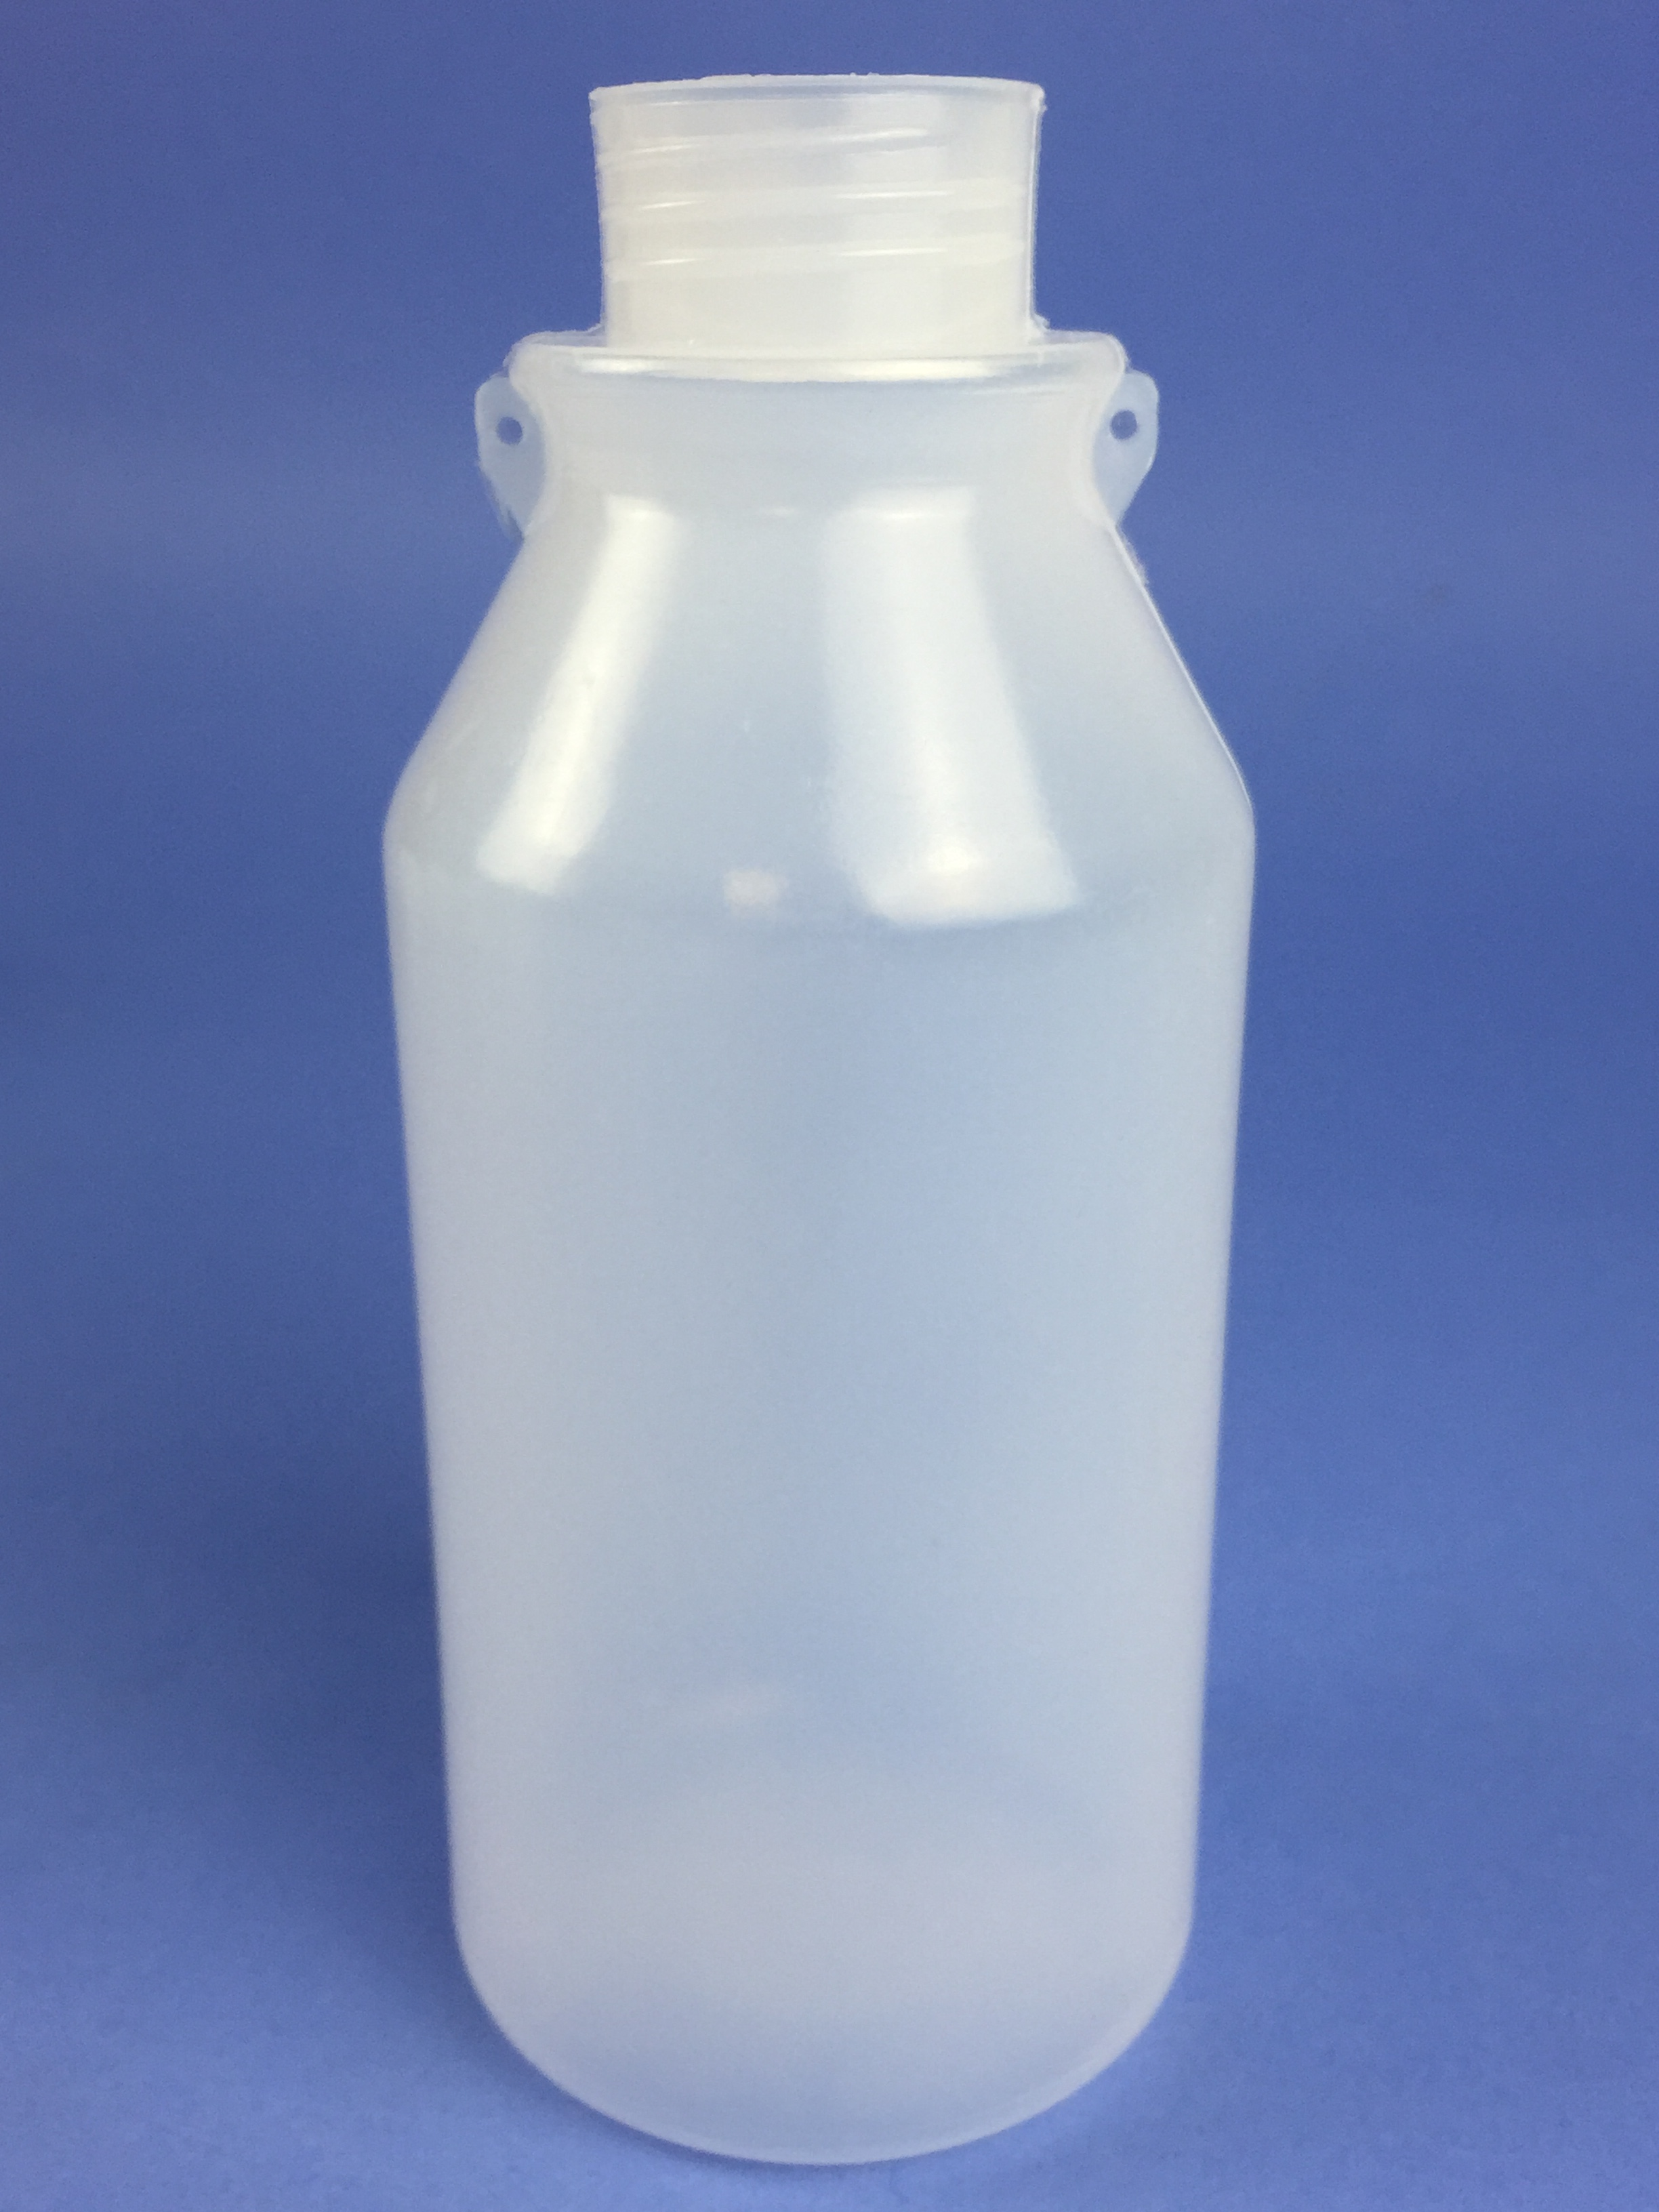 Plastic Bottle Wide Neck Clear Natural 1000ml Bottle